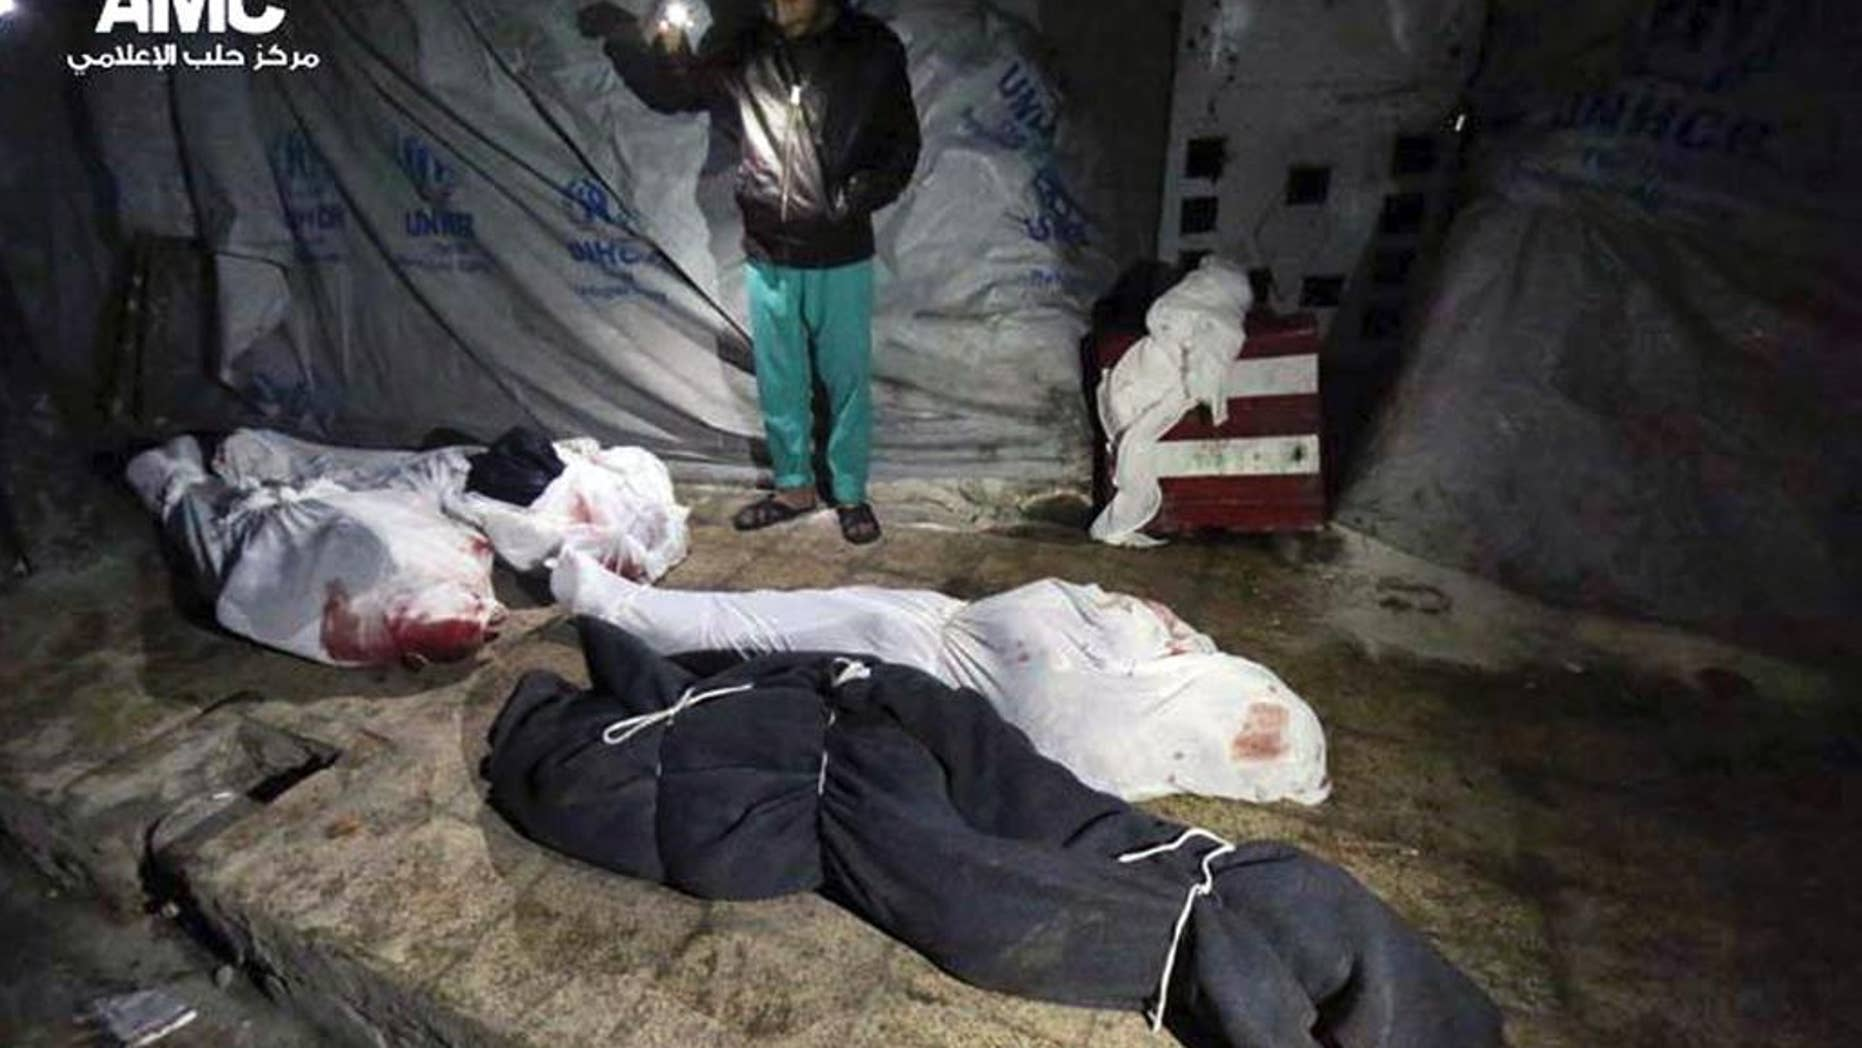 Feb. 5, 2015 - Syrian man stands next to bodies that were, according to activists, killed from an airstrike by the Syrian government forces in Aleppo, Syria. Syrian army helicopters dropped 2 barrel bombs on a crowded square in the northern city of Aleppo, killing tens of civilians as they sat on a bus and collected water, activists said Friday.